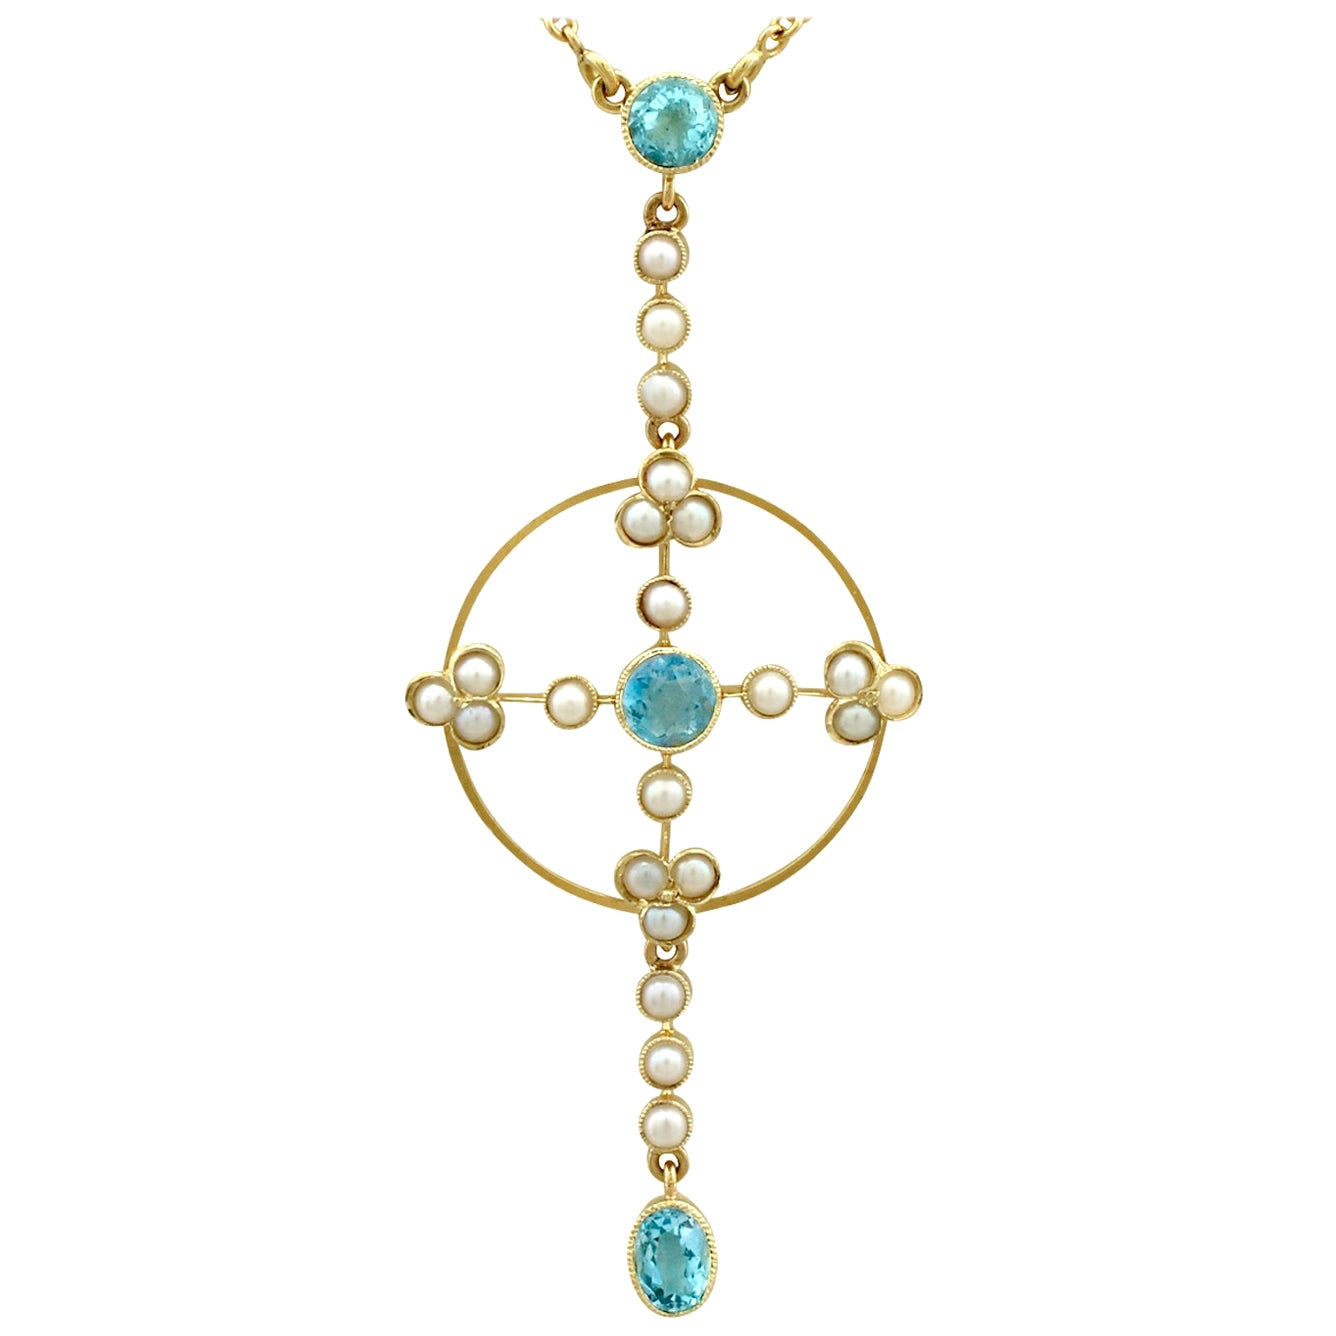 Antique Victorian Aquamarine and Pearl Yellow Gold Pendant, circa 1890